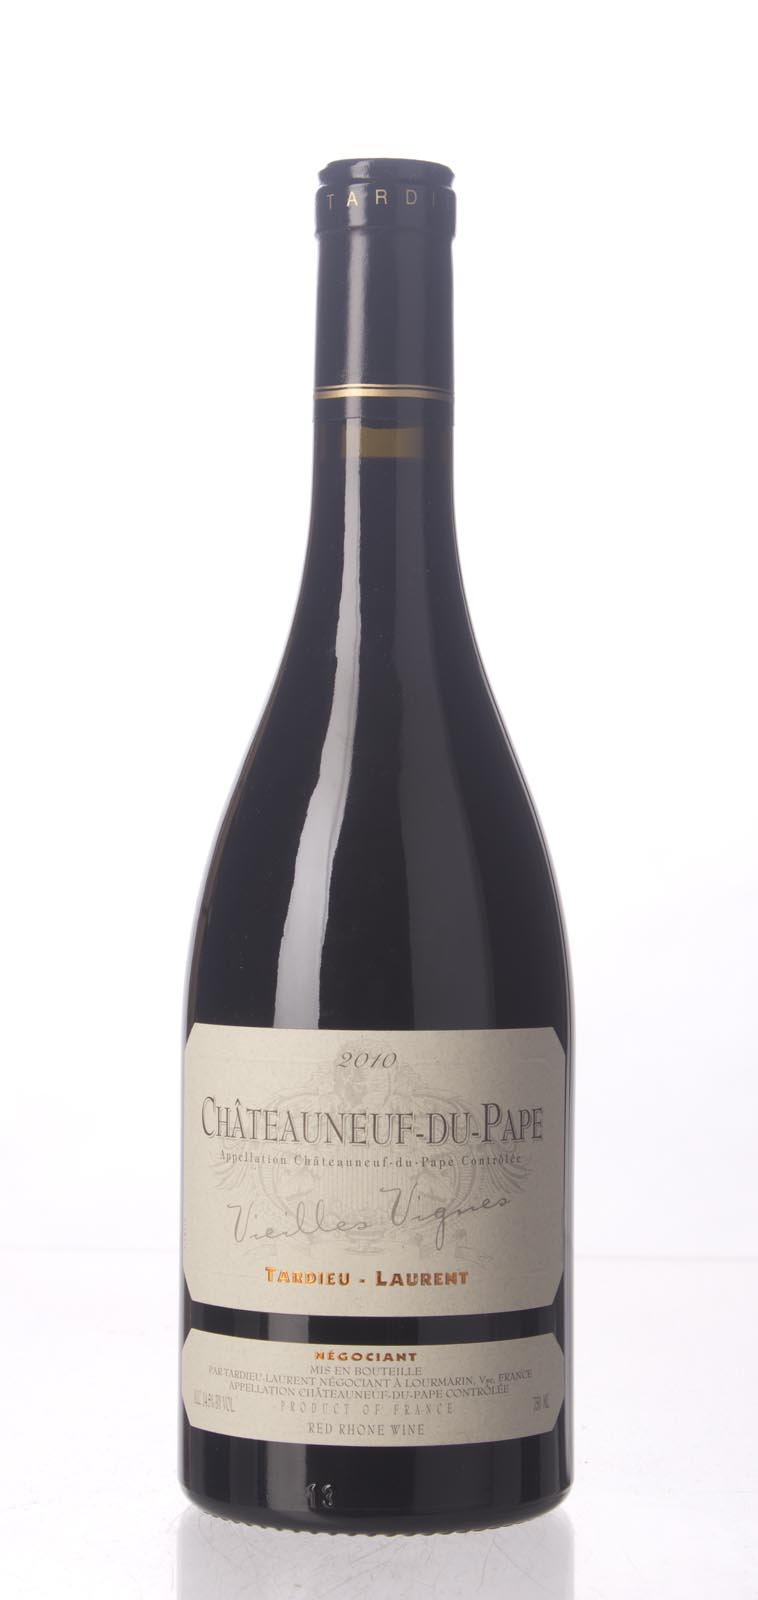 Tardieu Laurent Chateauneuf du Pape Vieilles Vignes 2010, 750mL (WS96) from The BPW - Merchants of rare and fine wines.